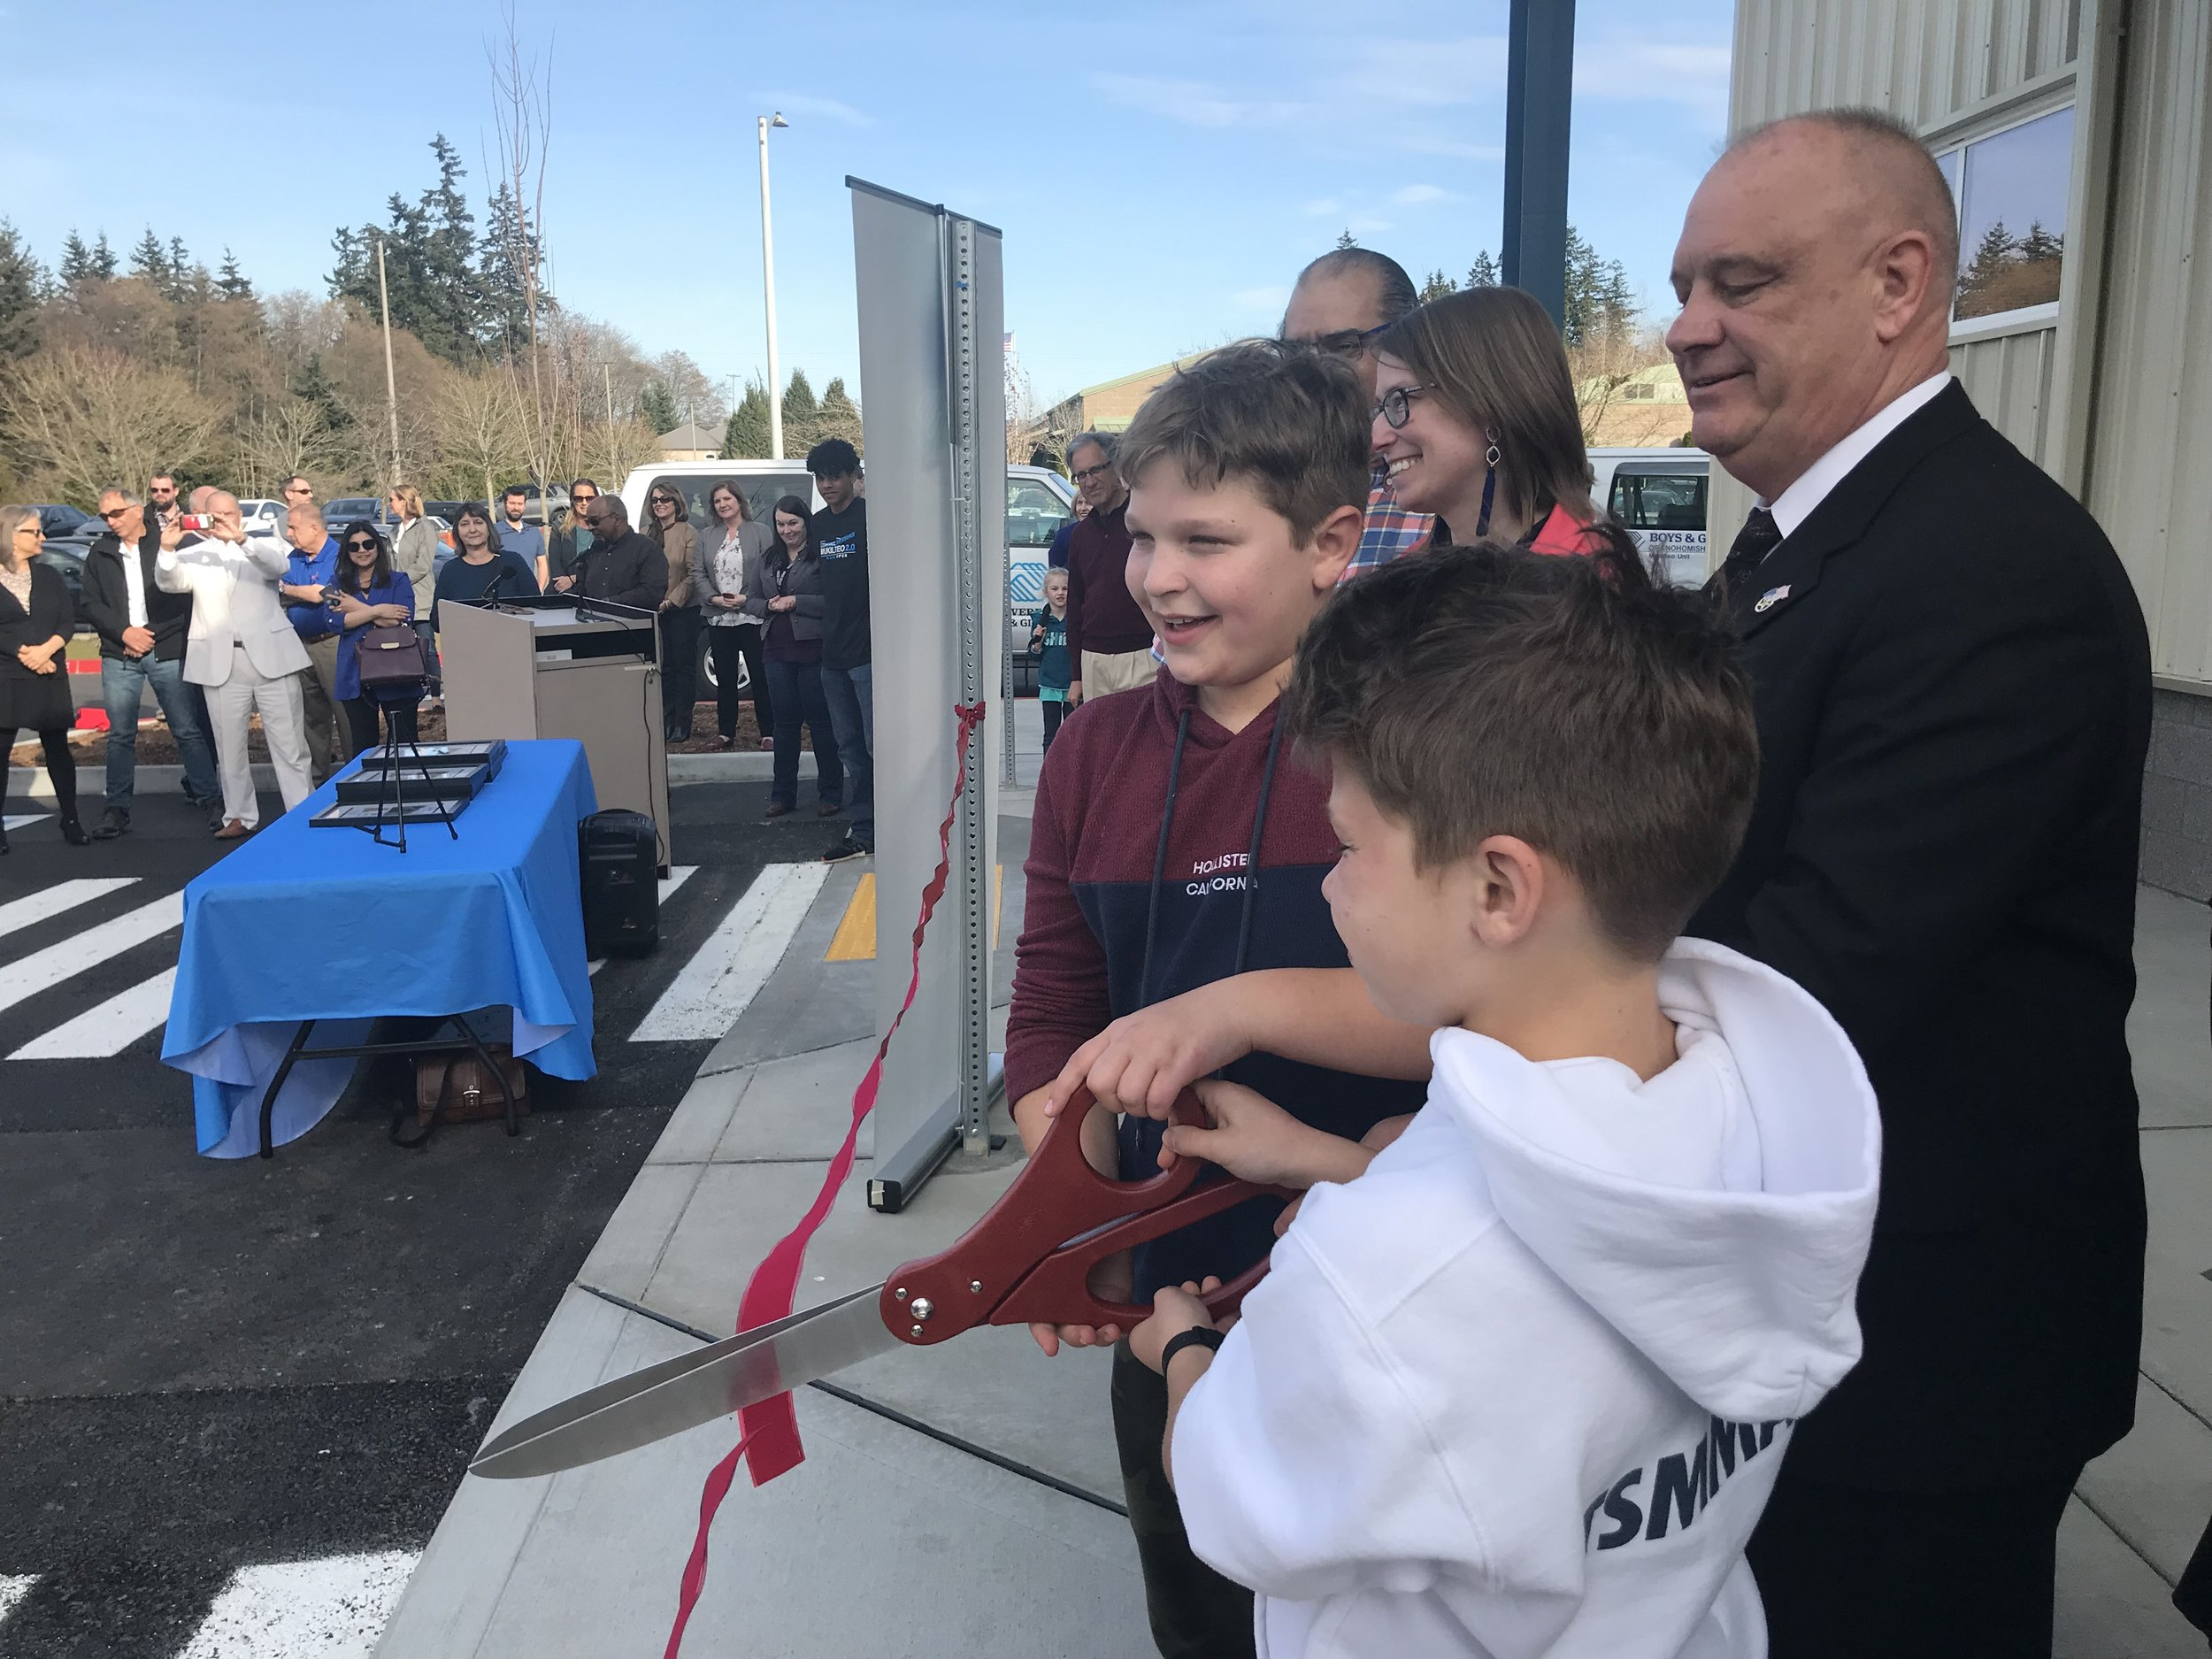 Max and Daniel got to cut the ribbon